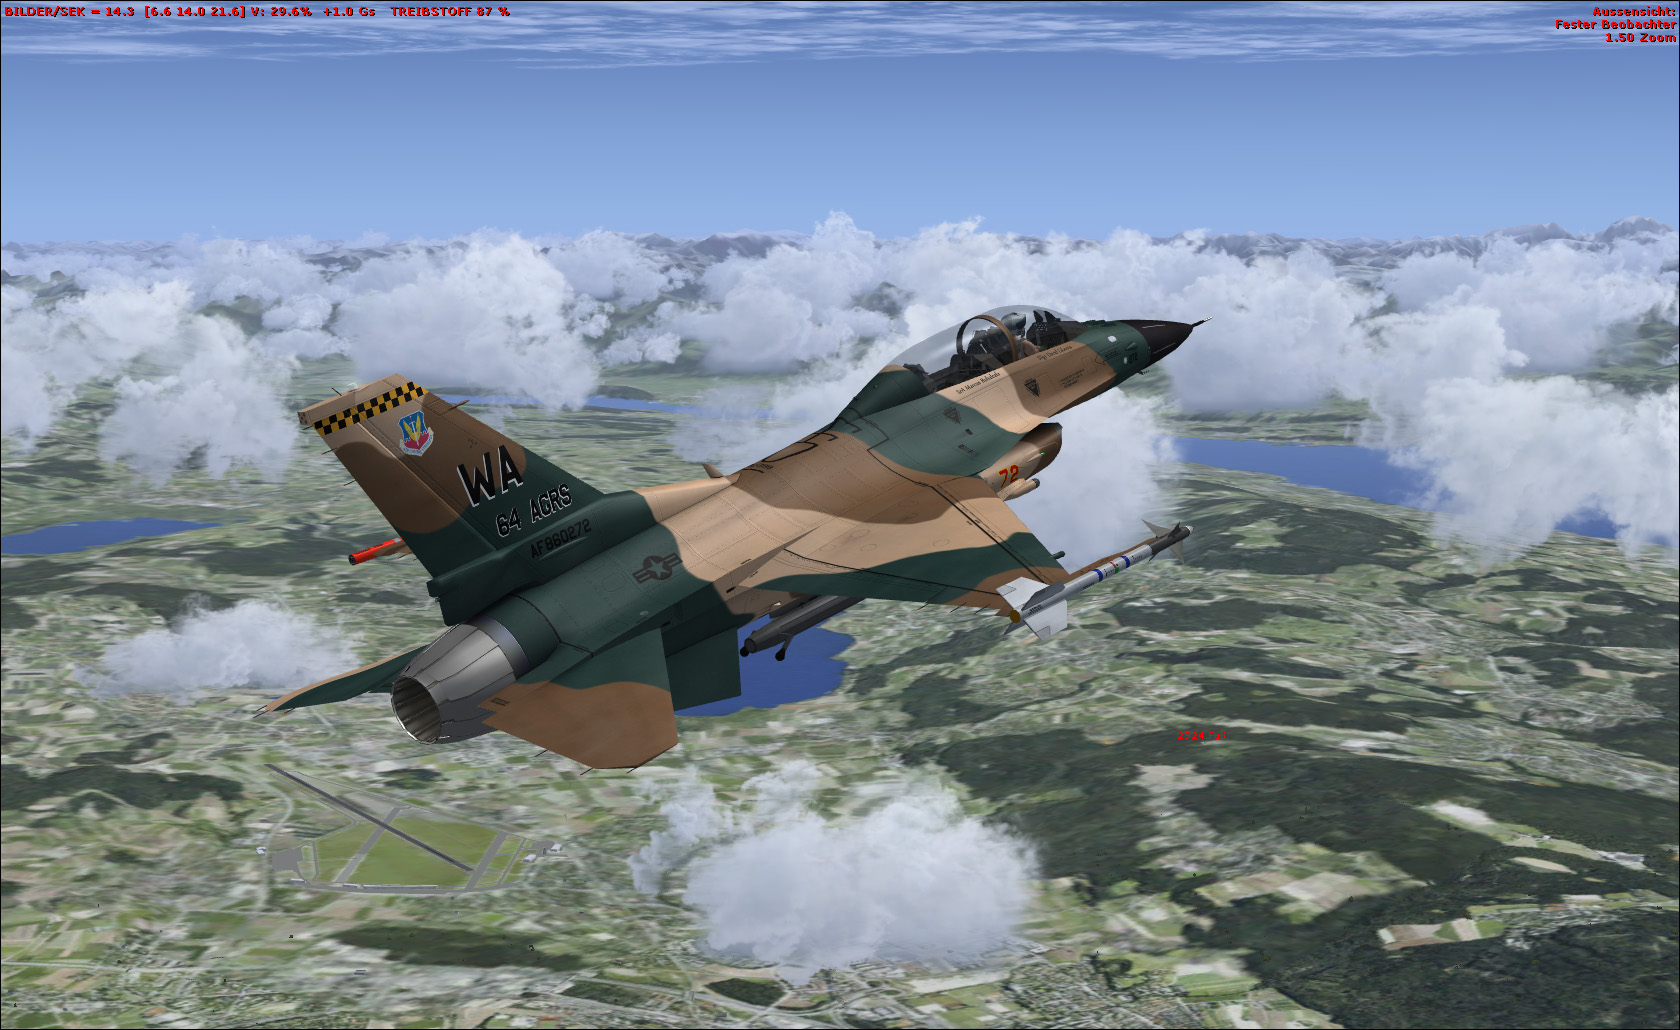 F-16 multirole fighter download (1998 simulation game).